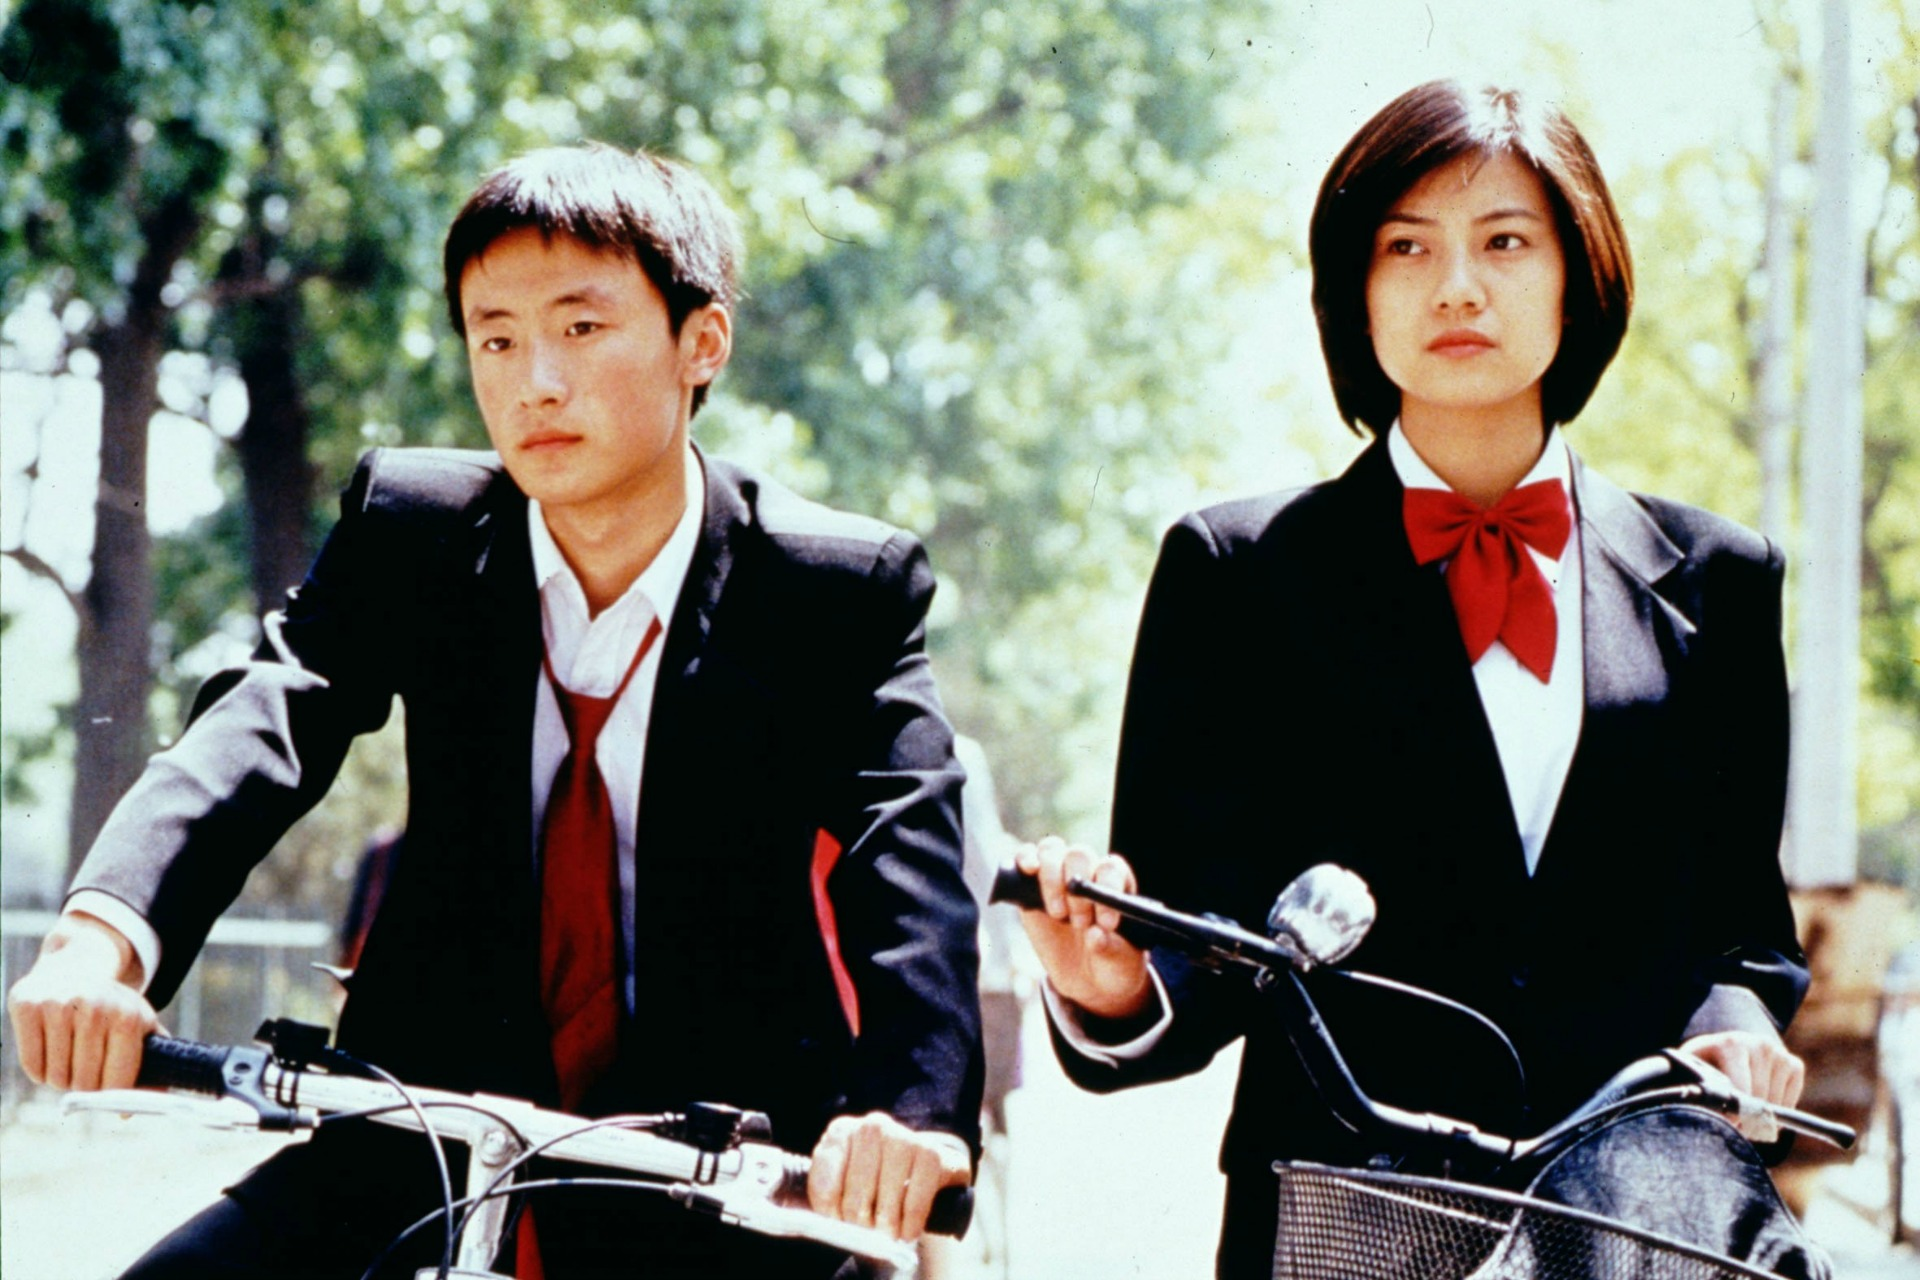 The best films made in China